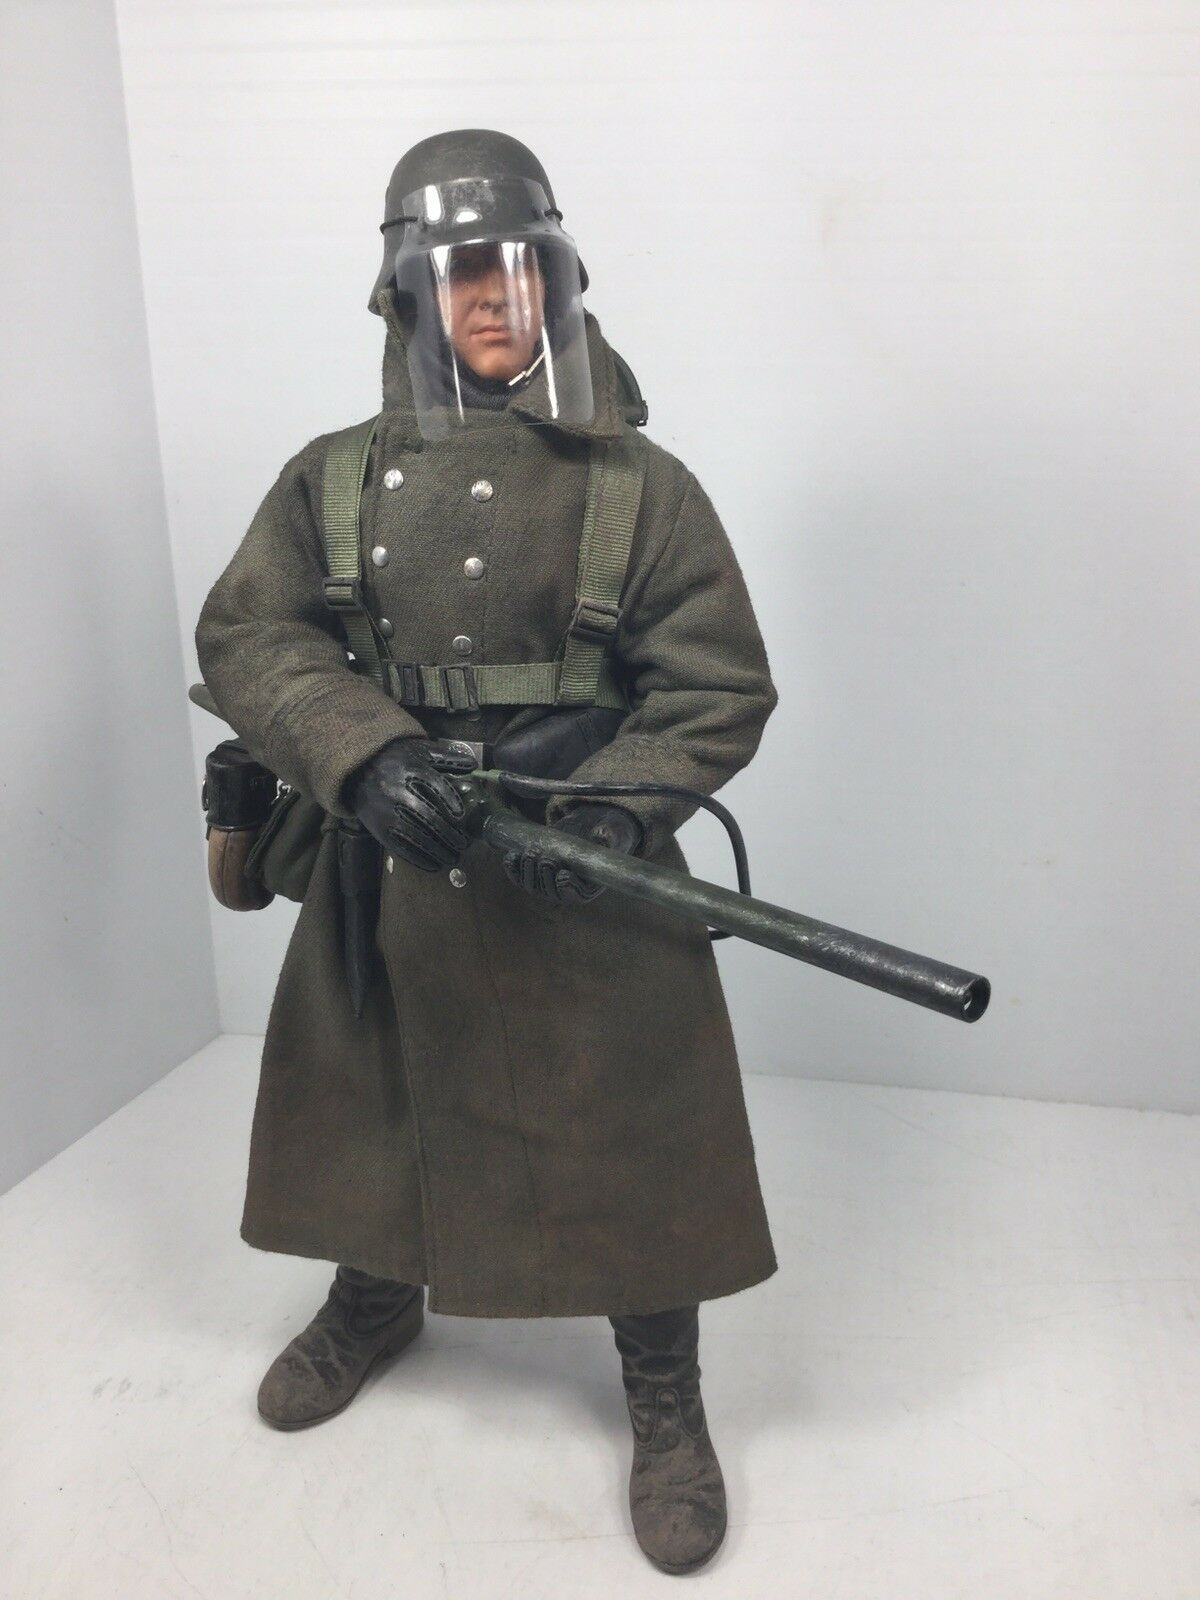 1/6 DRAGON WEHRMACHT FLAMETHROWER GUNNER STALINGRAD WINTER P-38 BBI DID 21ST WW2